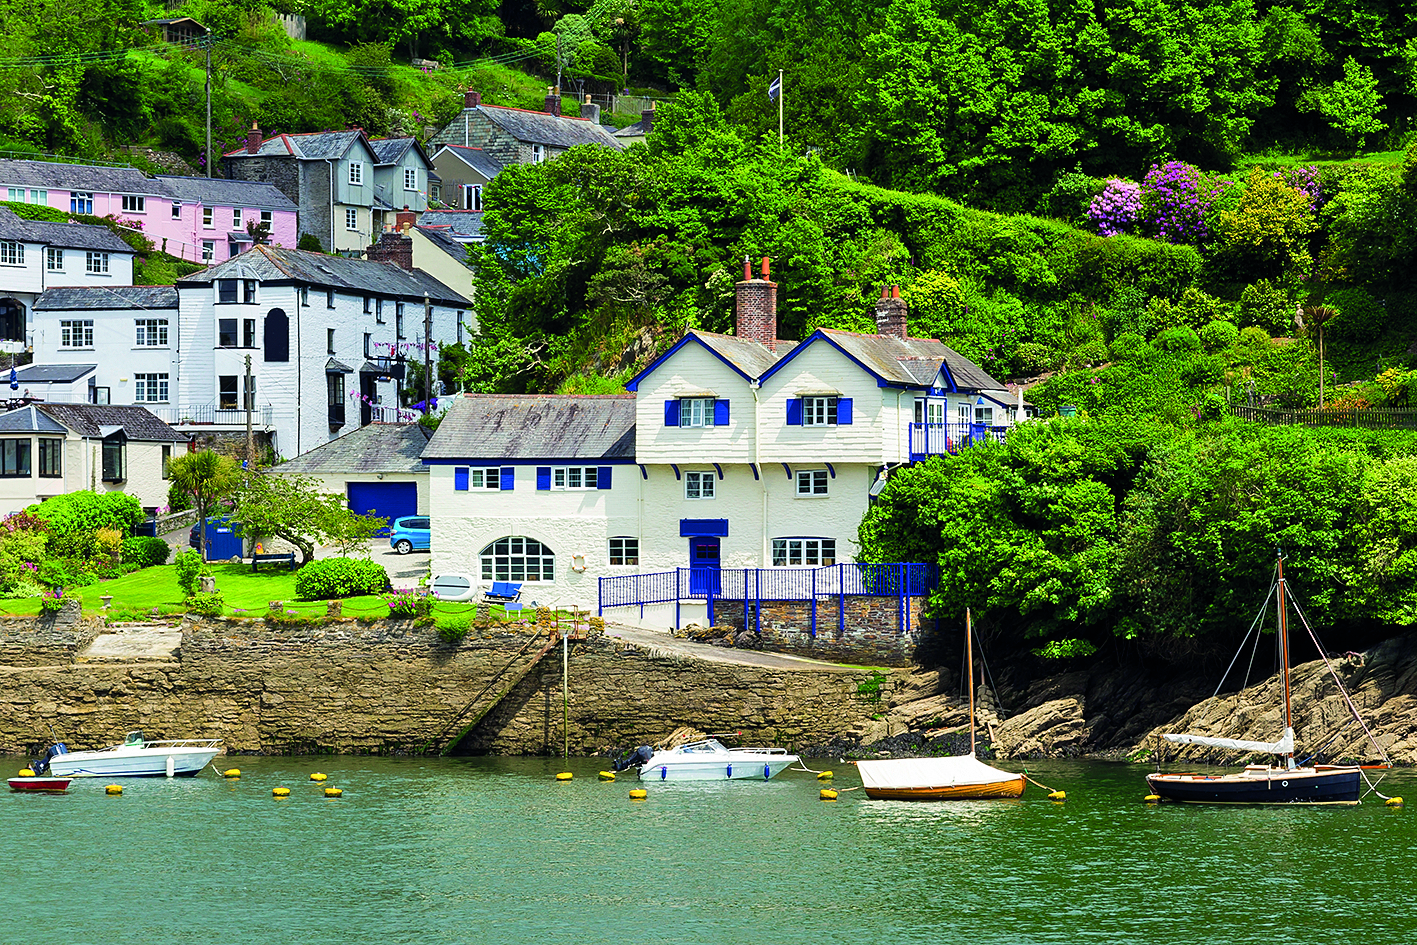 Daphne du Maurier's first novel, The Loving Spirit, was written at Ferryside in Bodinnick, Cornwall. Credit: iStock